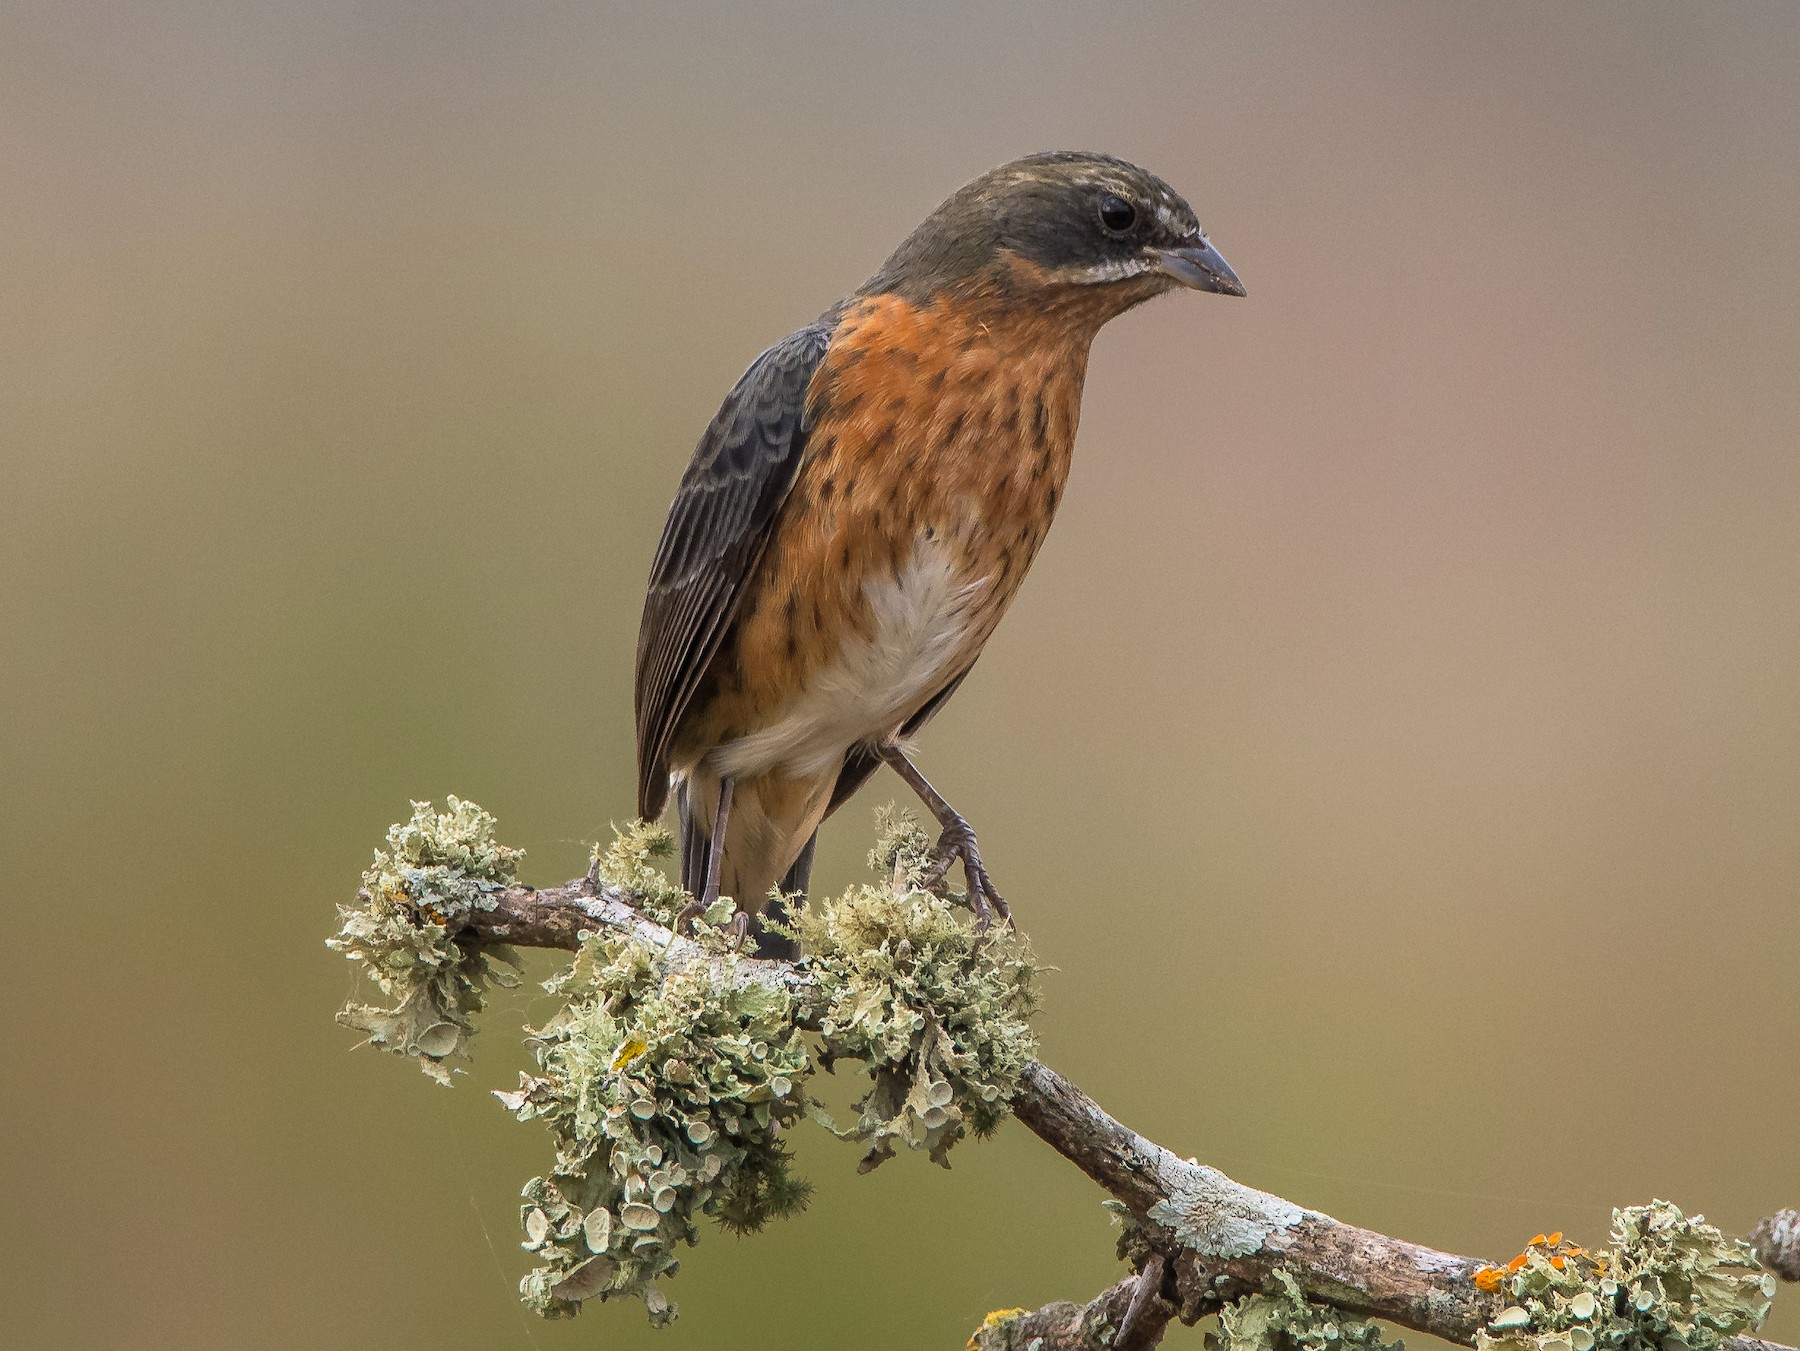 Black-and-rufous Warbling-Finch - Pablo Re